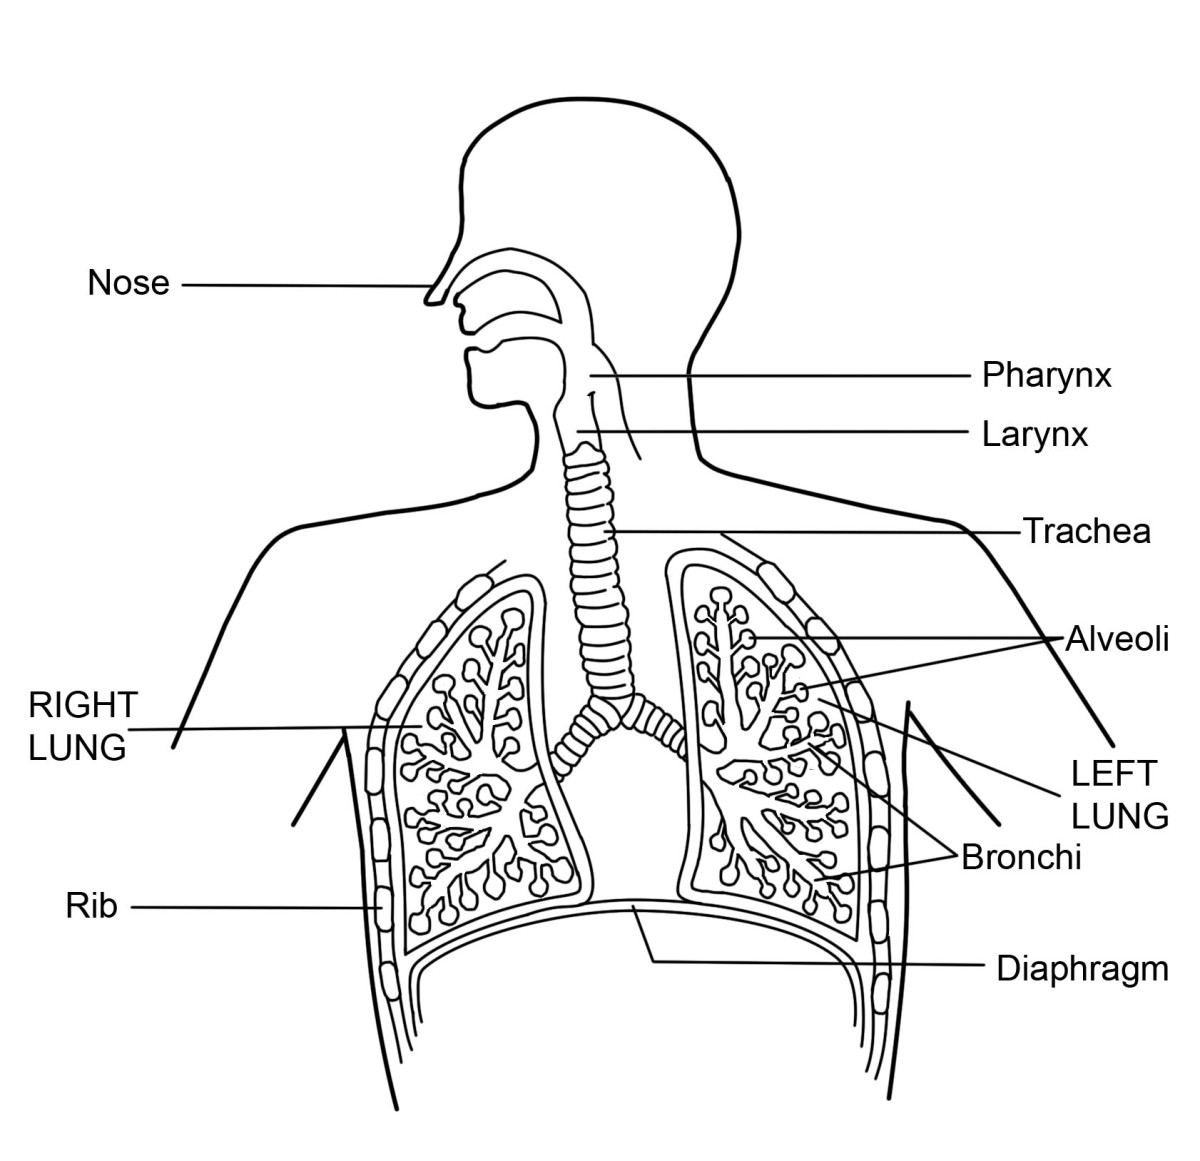 lung alveoli diagram vx wiring what is the respiratory system and function